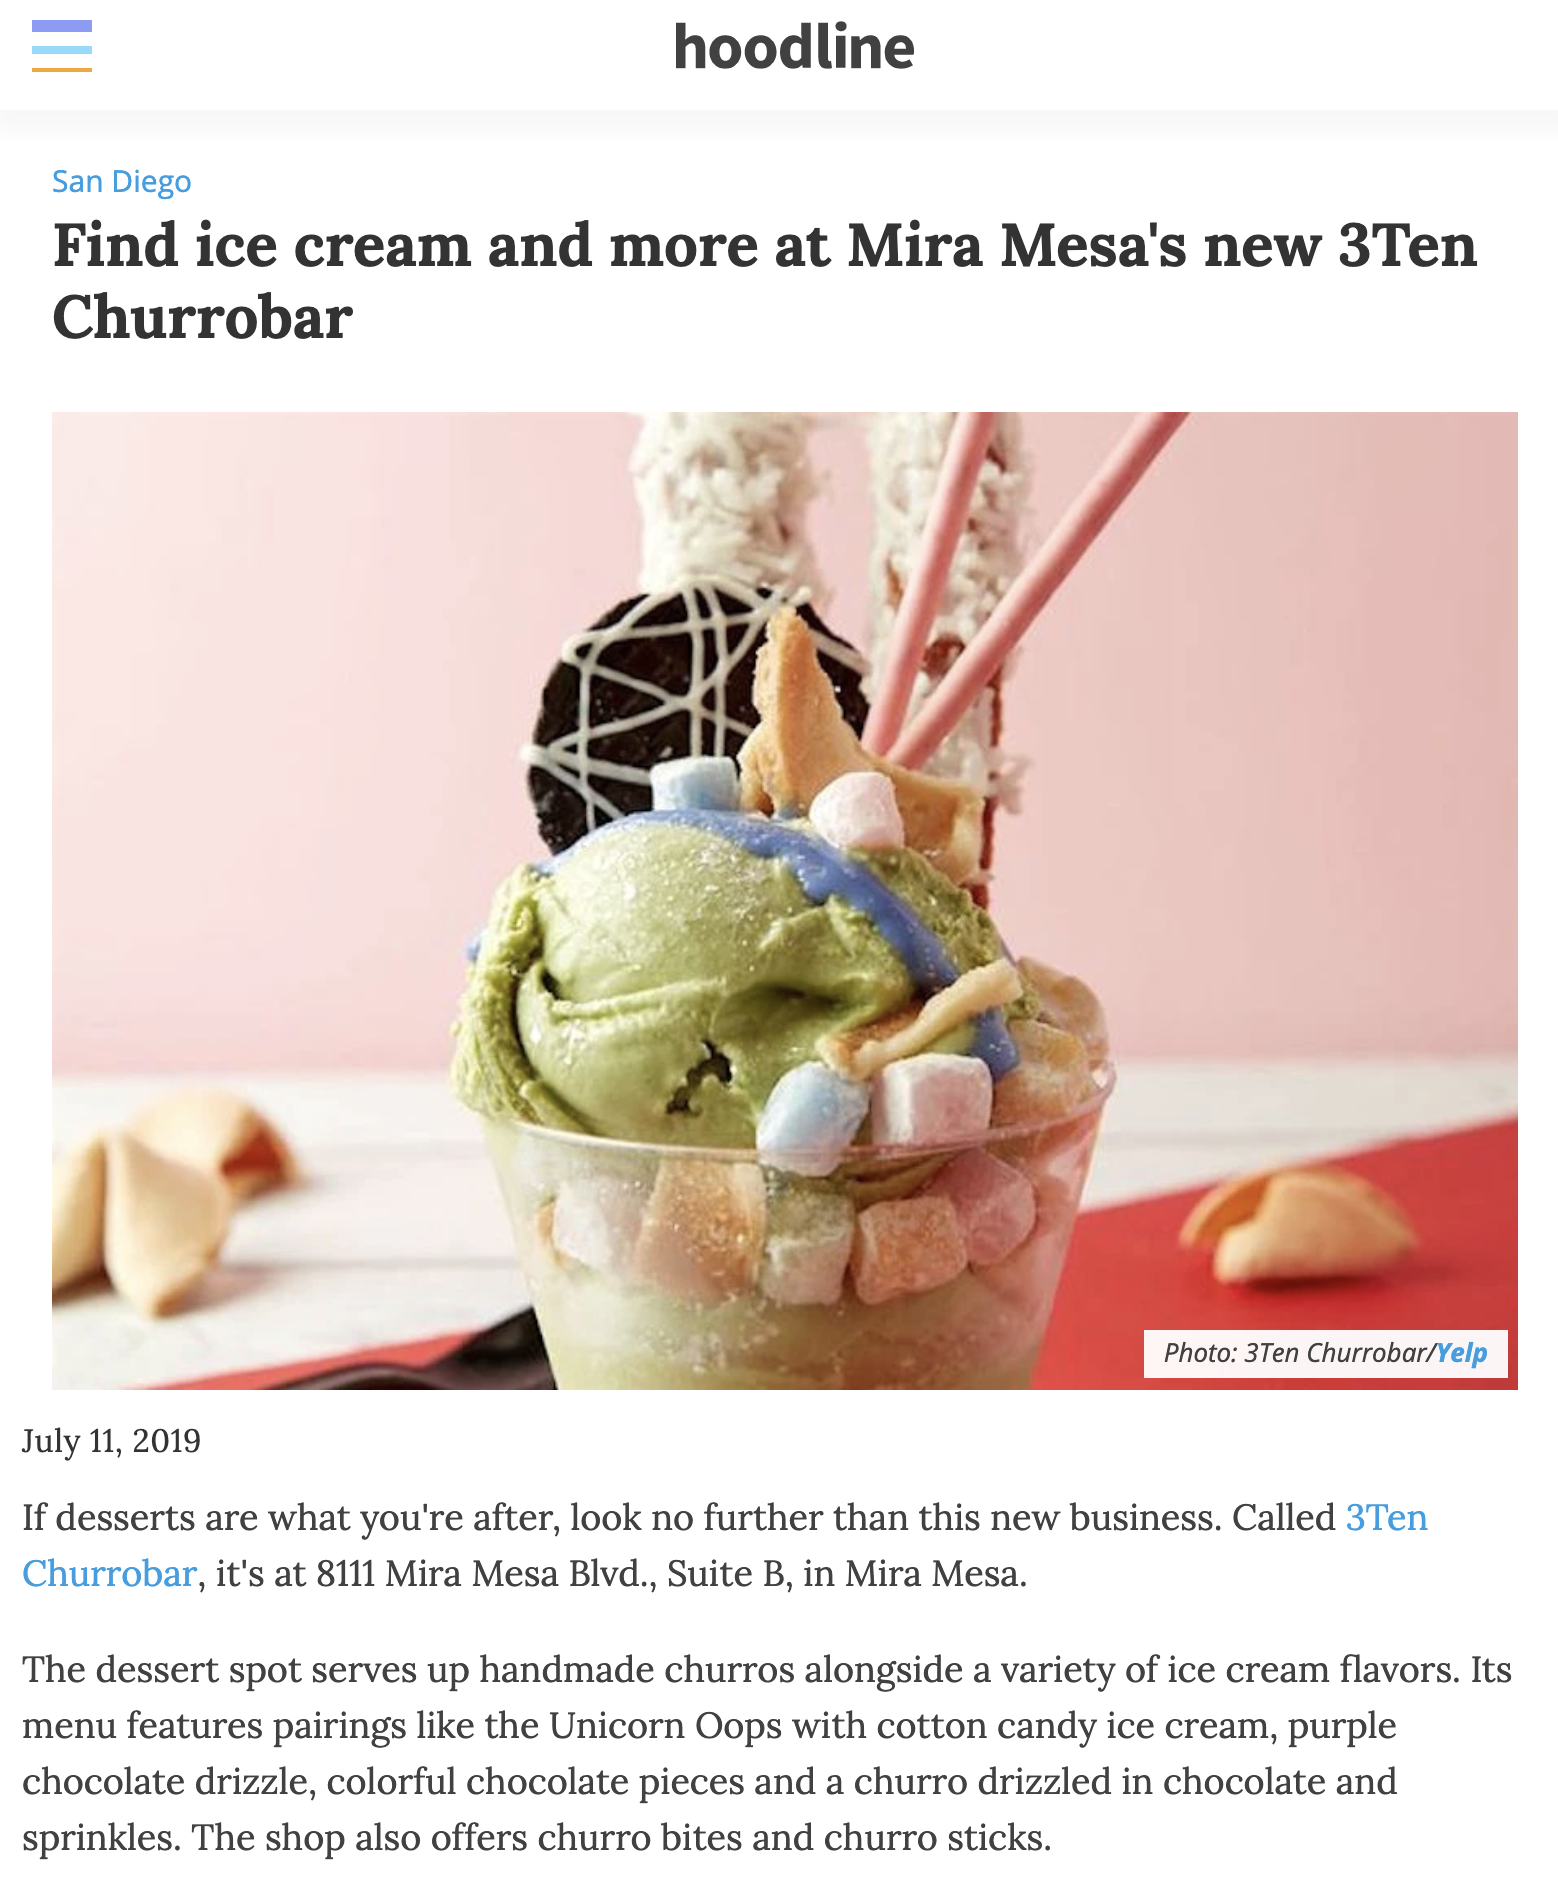 HOODLINE - Find ice cream and more at Mira Mesa's new 3Ten Churrobar